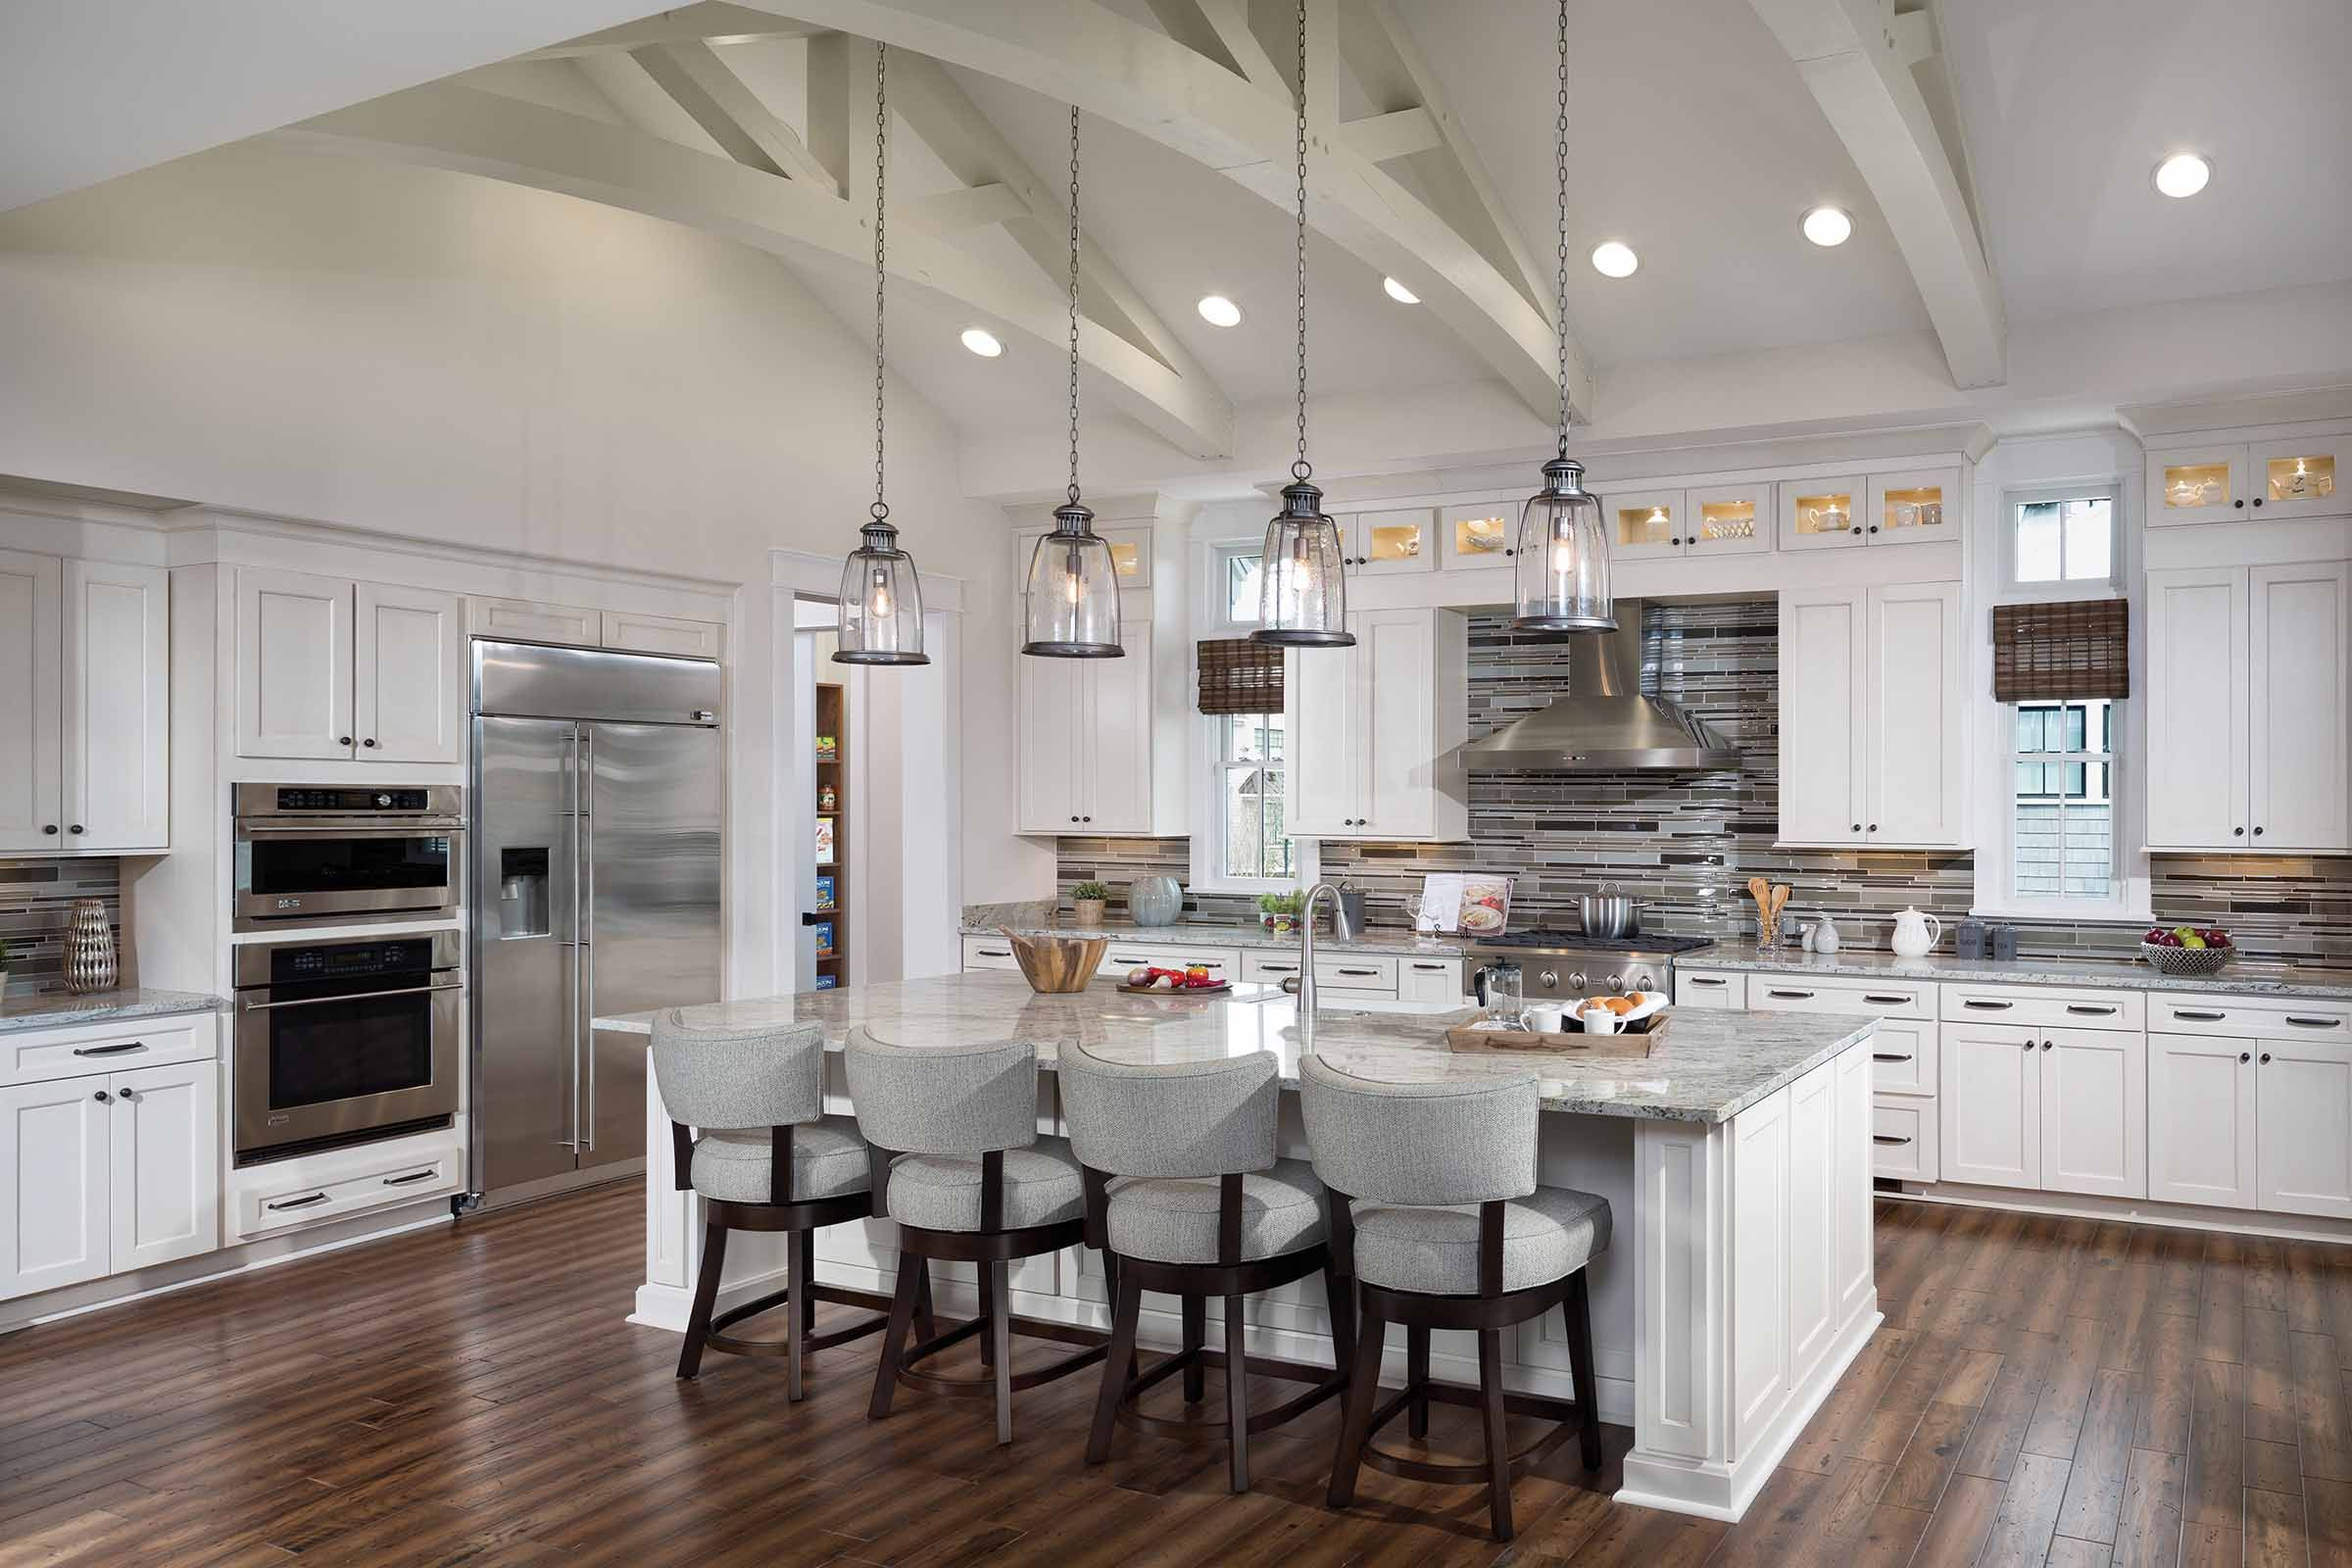 Board Between Cabinets And Glass Cabinets Arthur Rutenberg Homes Latest Kitchen Trends Model Homes